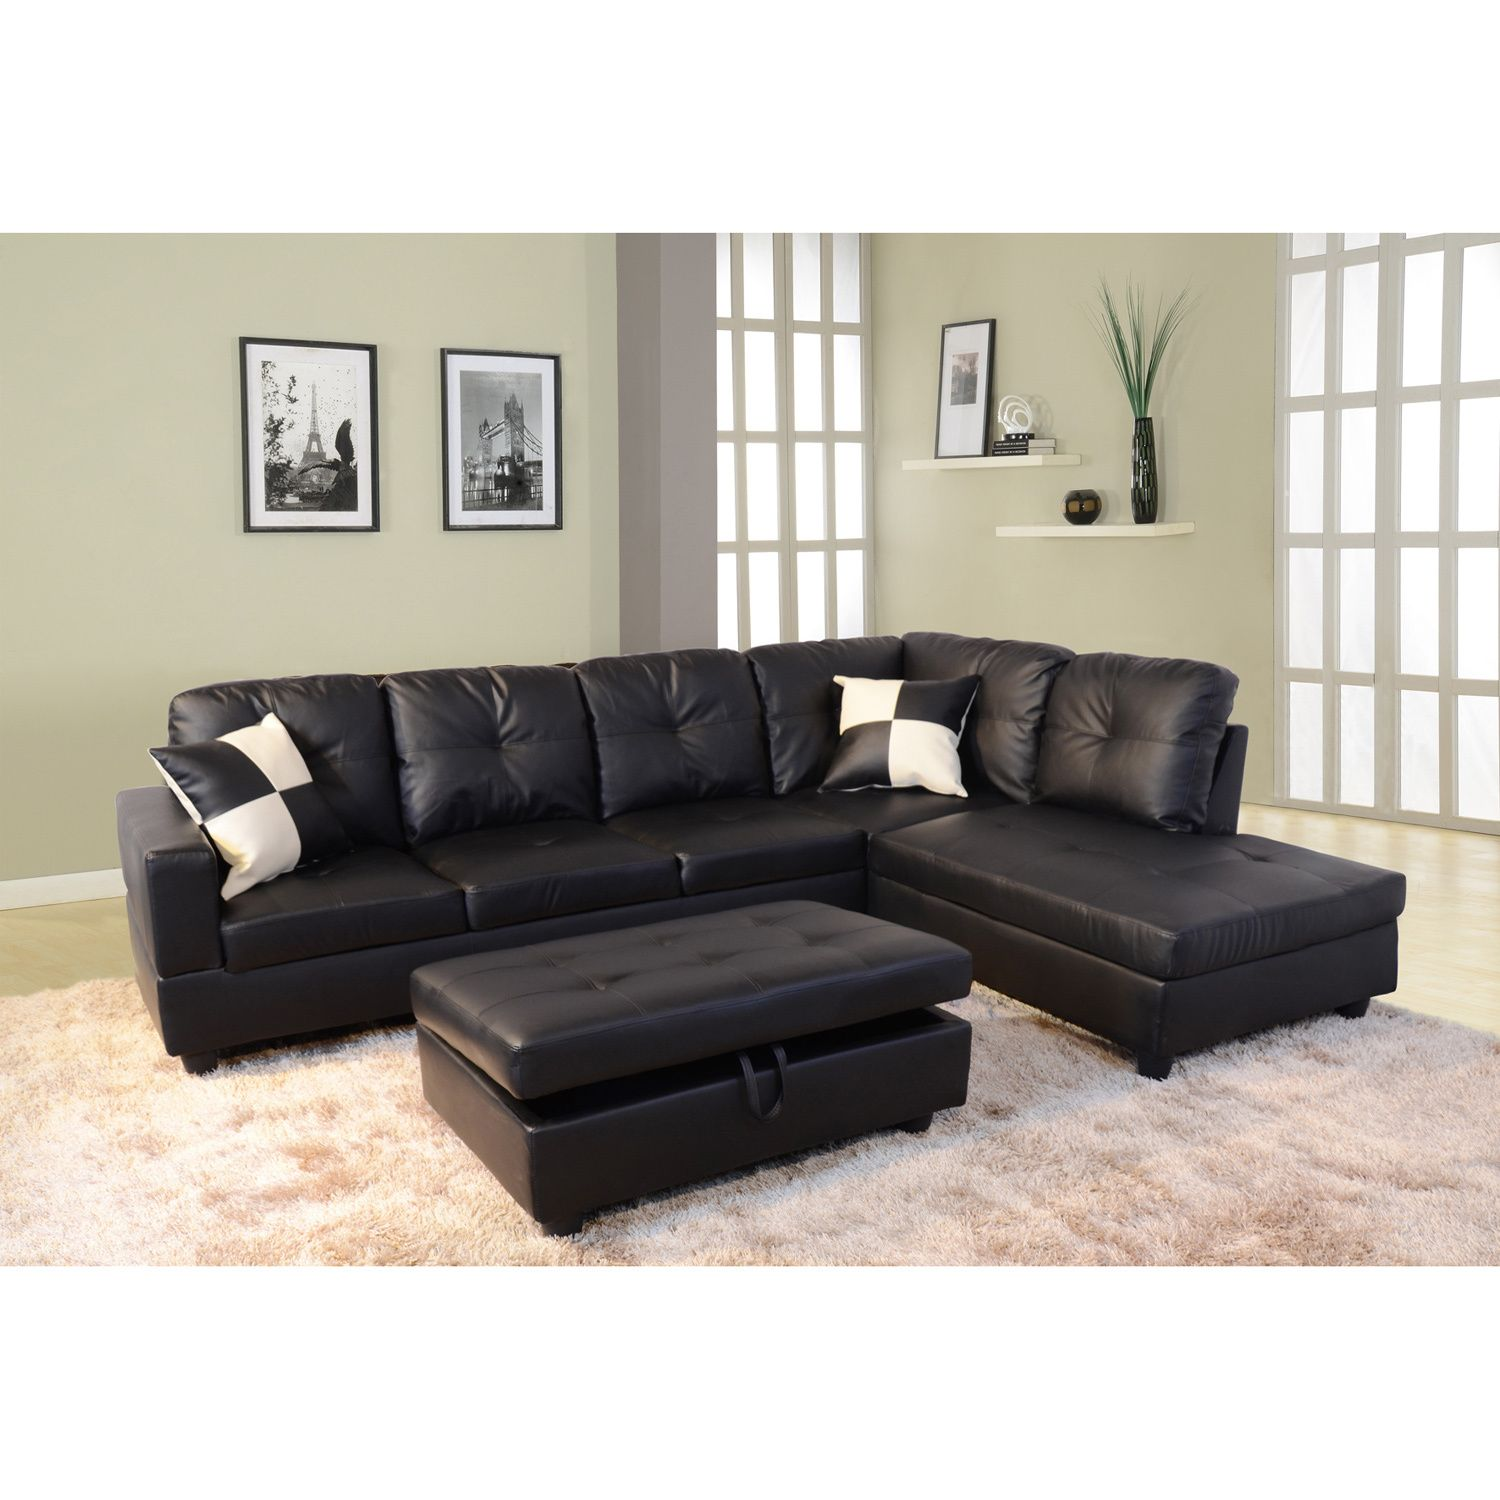 Awesome Faux Leather Sleeper sofa